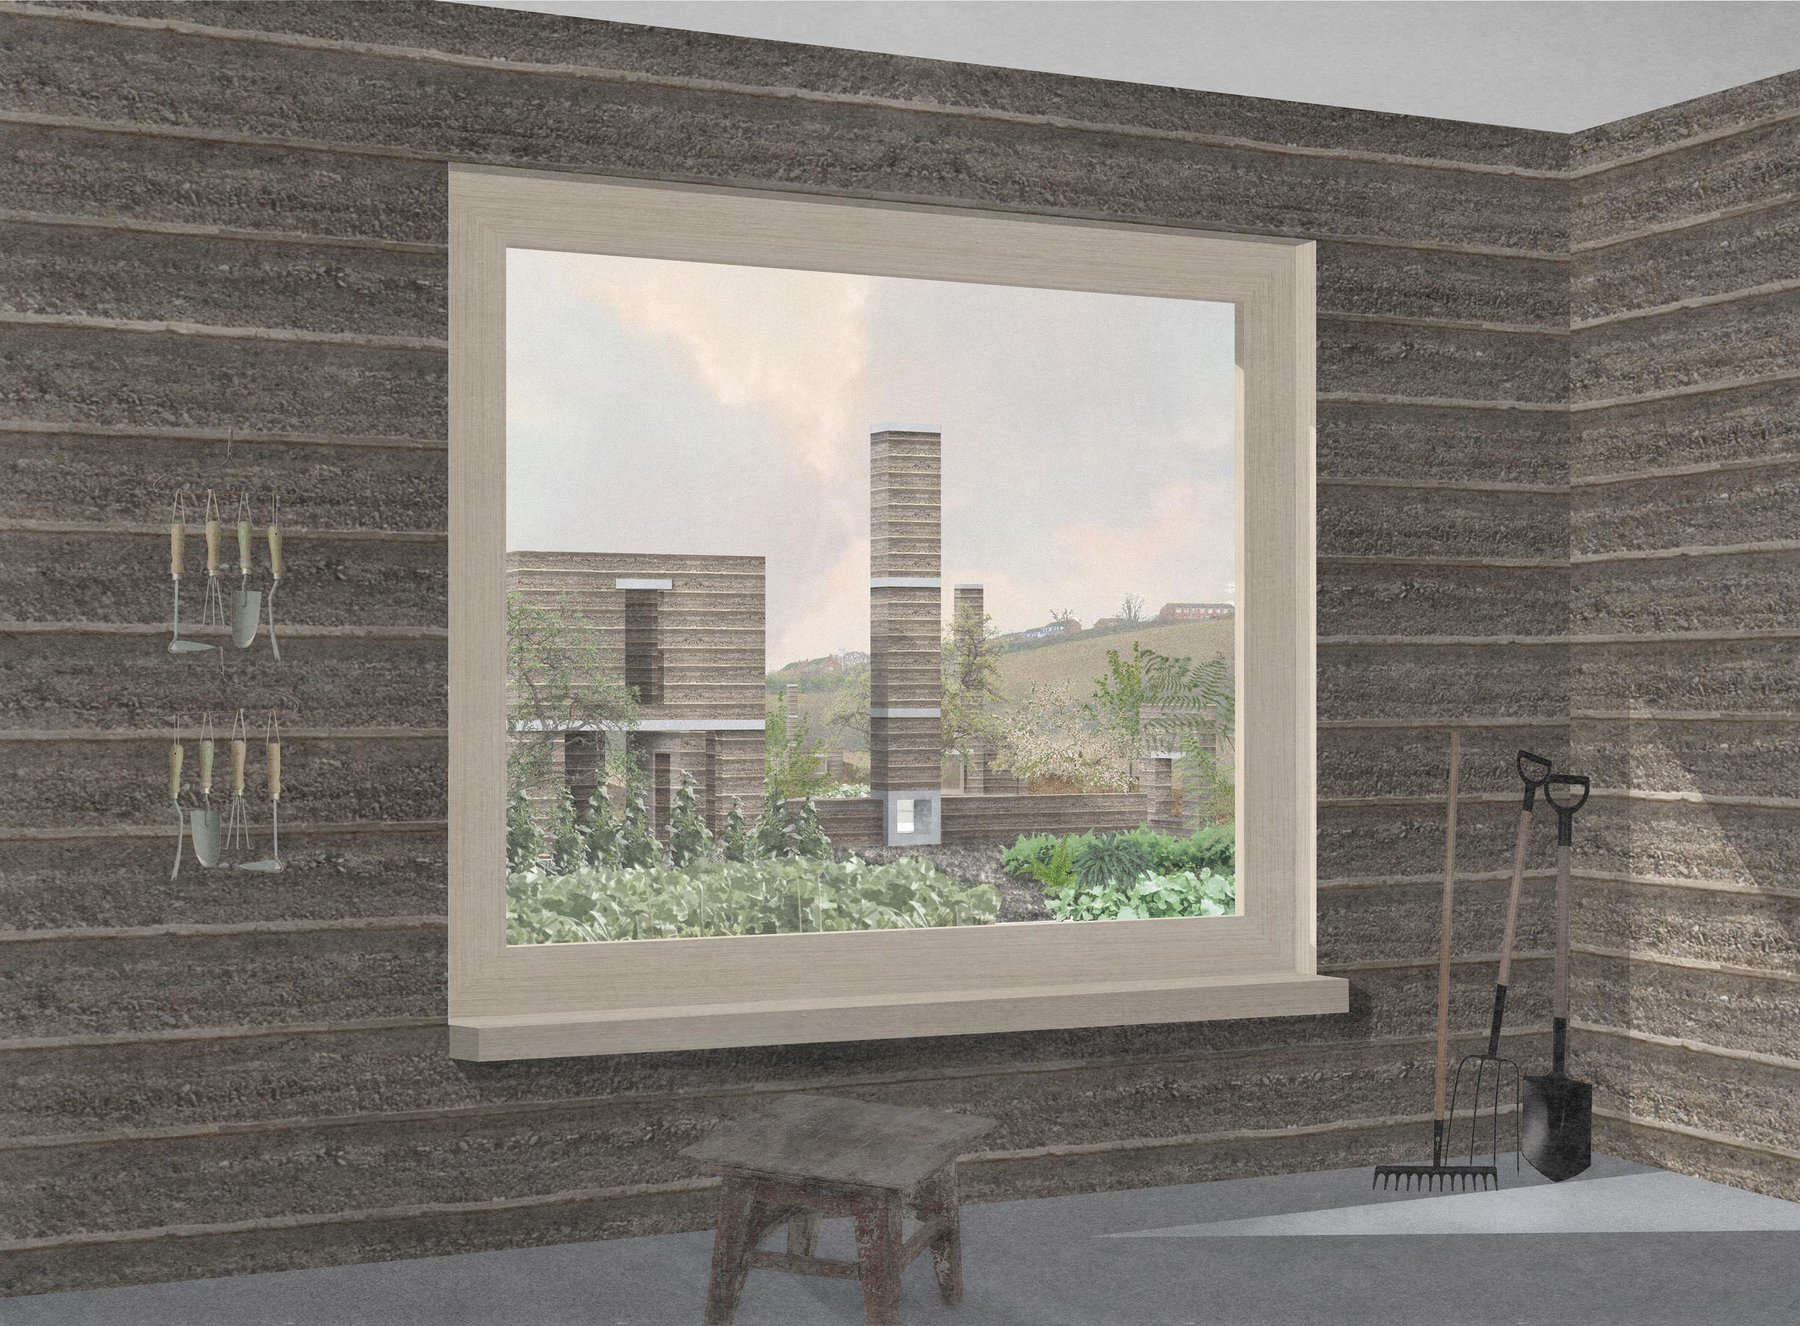 Joey Beer,Allotment Folly, View to the landscape describing initail folly use.jpg